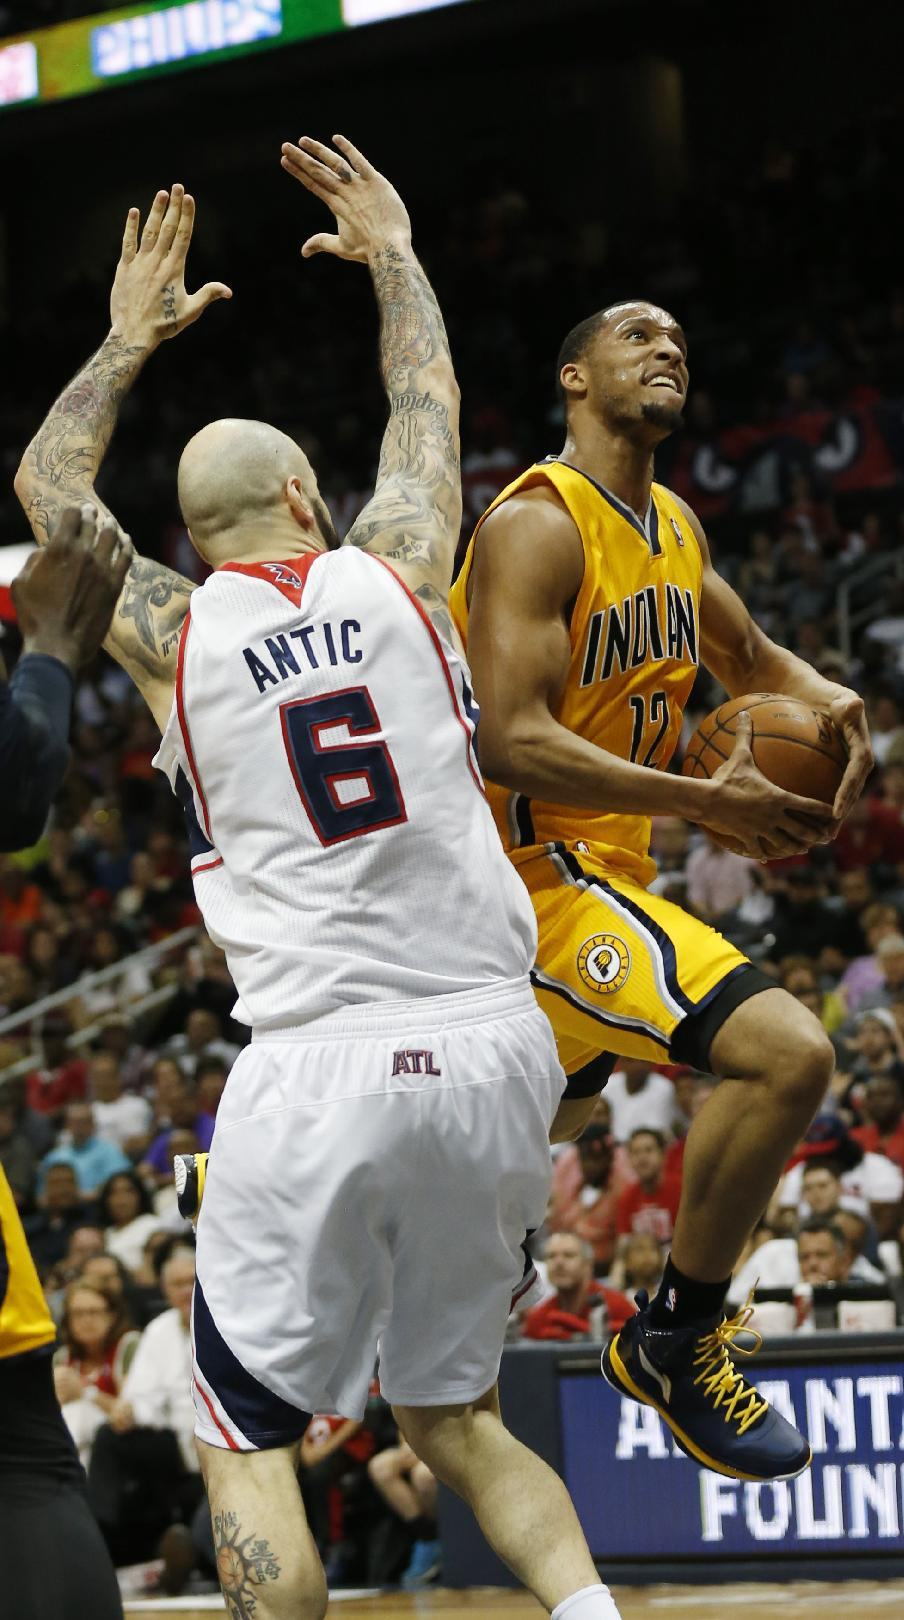 Indiana Pacers forward Evan Turner (12) drives to the basket as Atlanta Hawks center Pero Antic (6) defends in the first half of Game 4 of an NBA basketball first-round playoff series, Saturday, April 26, 2014, in Atlanta